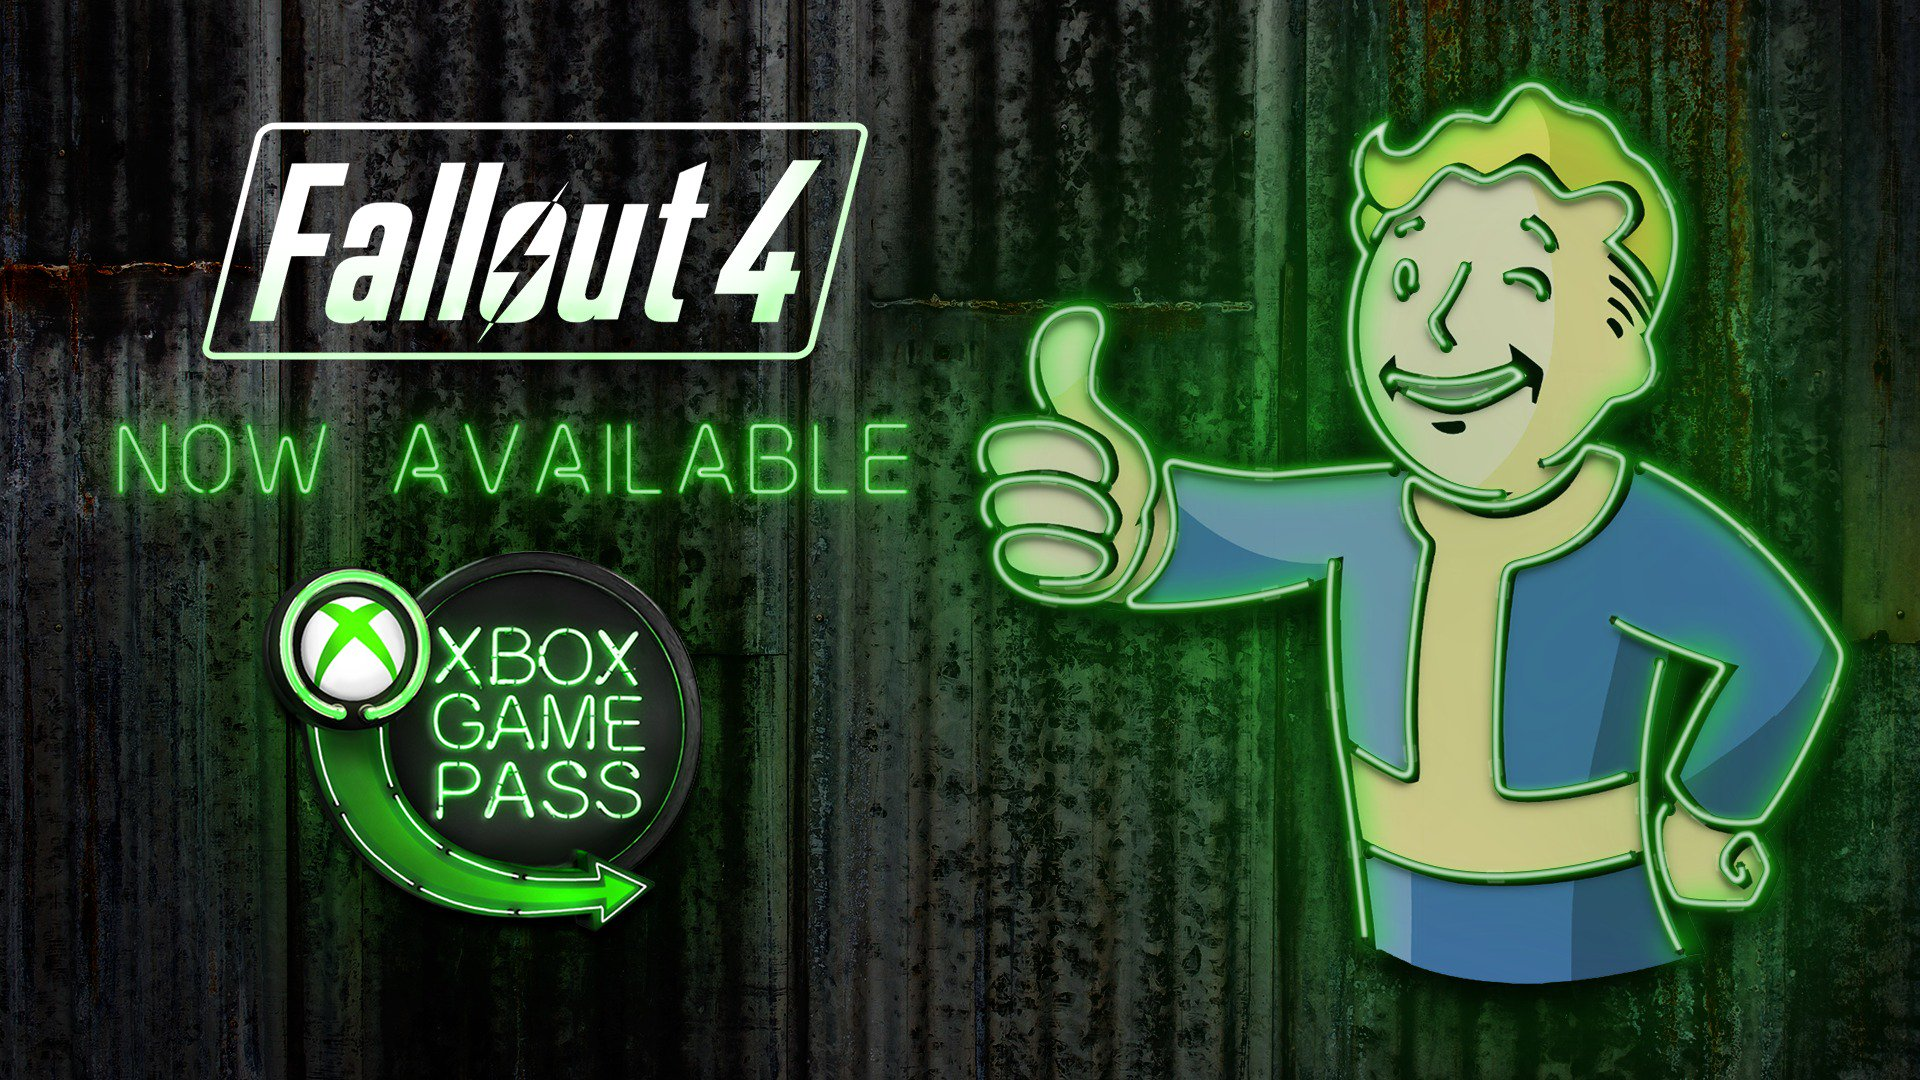 S.P.E.C.I.A.L. surprise for ya: Fallout 4 just dropped on Xbox Game Pass. Play it at https://t.co/IeOj0WbQB3 https://t.co/MzmgMySUyE